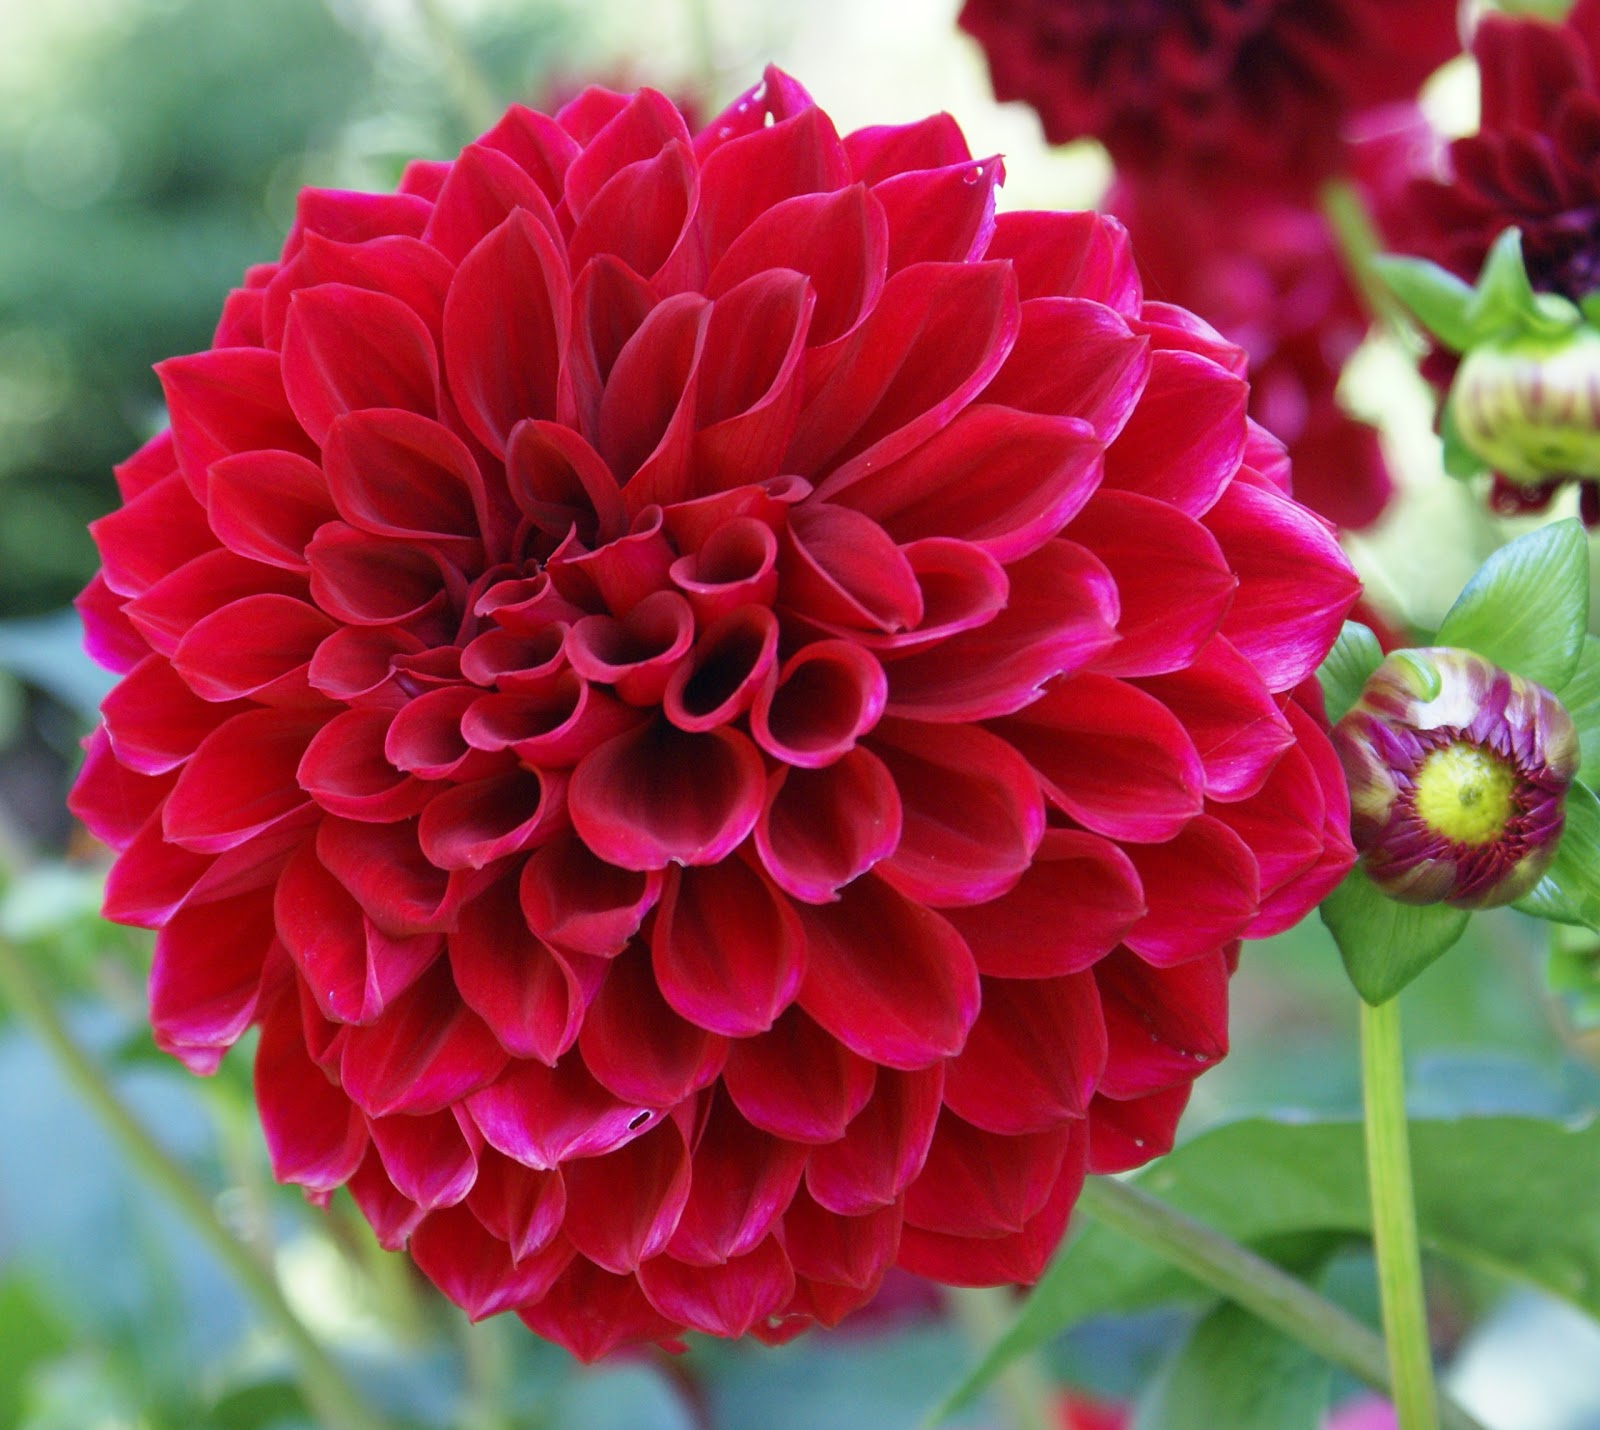 Dahlia Flower Flower Homes Dahlia Flowers